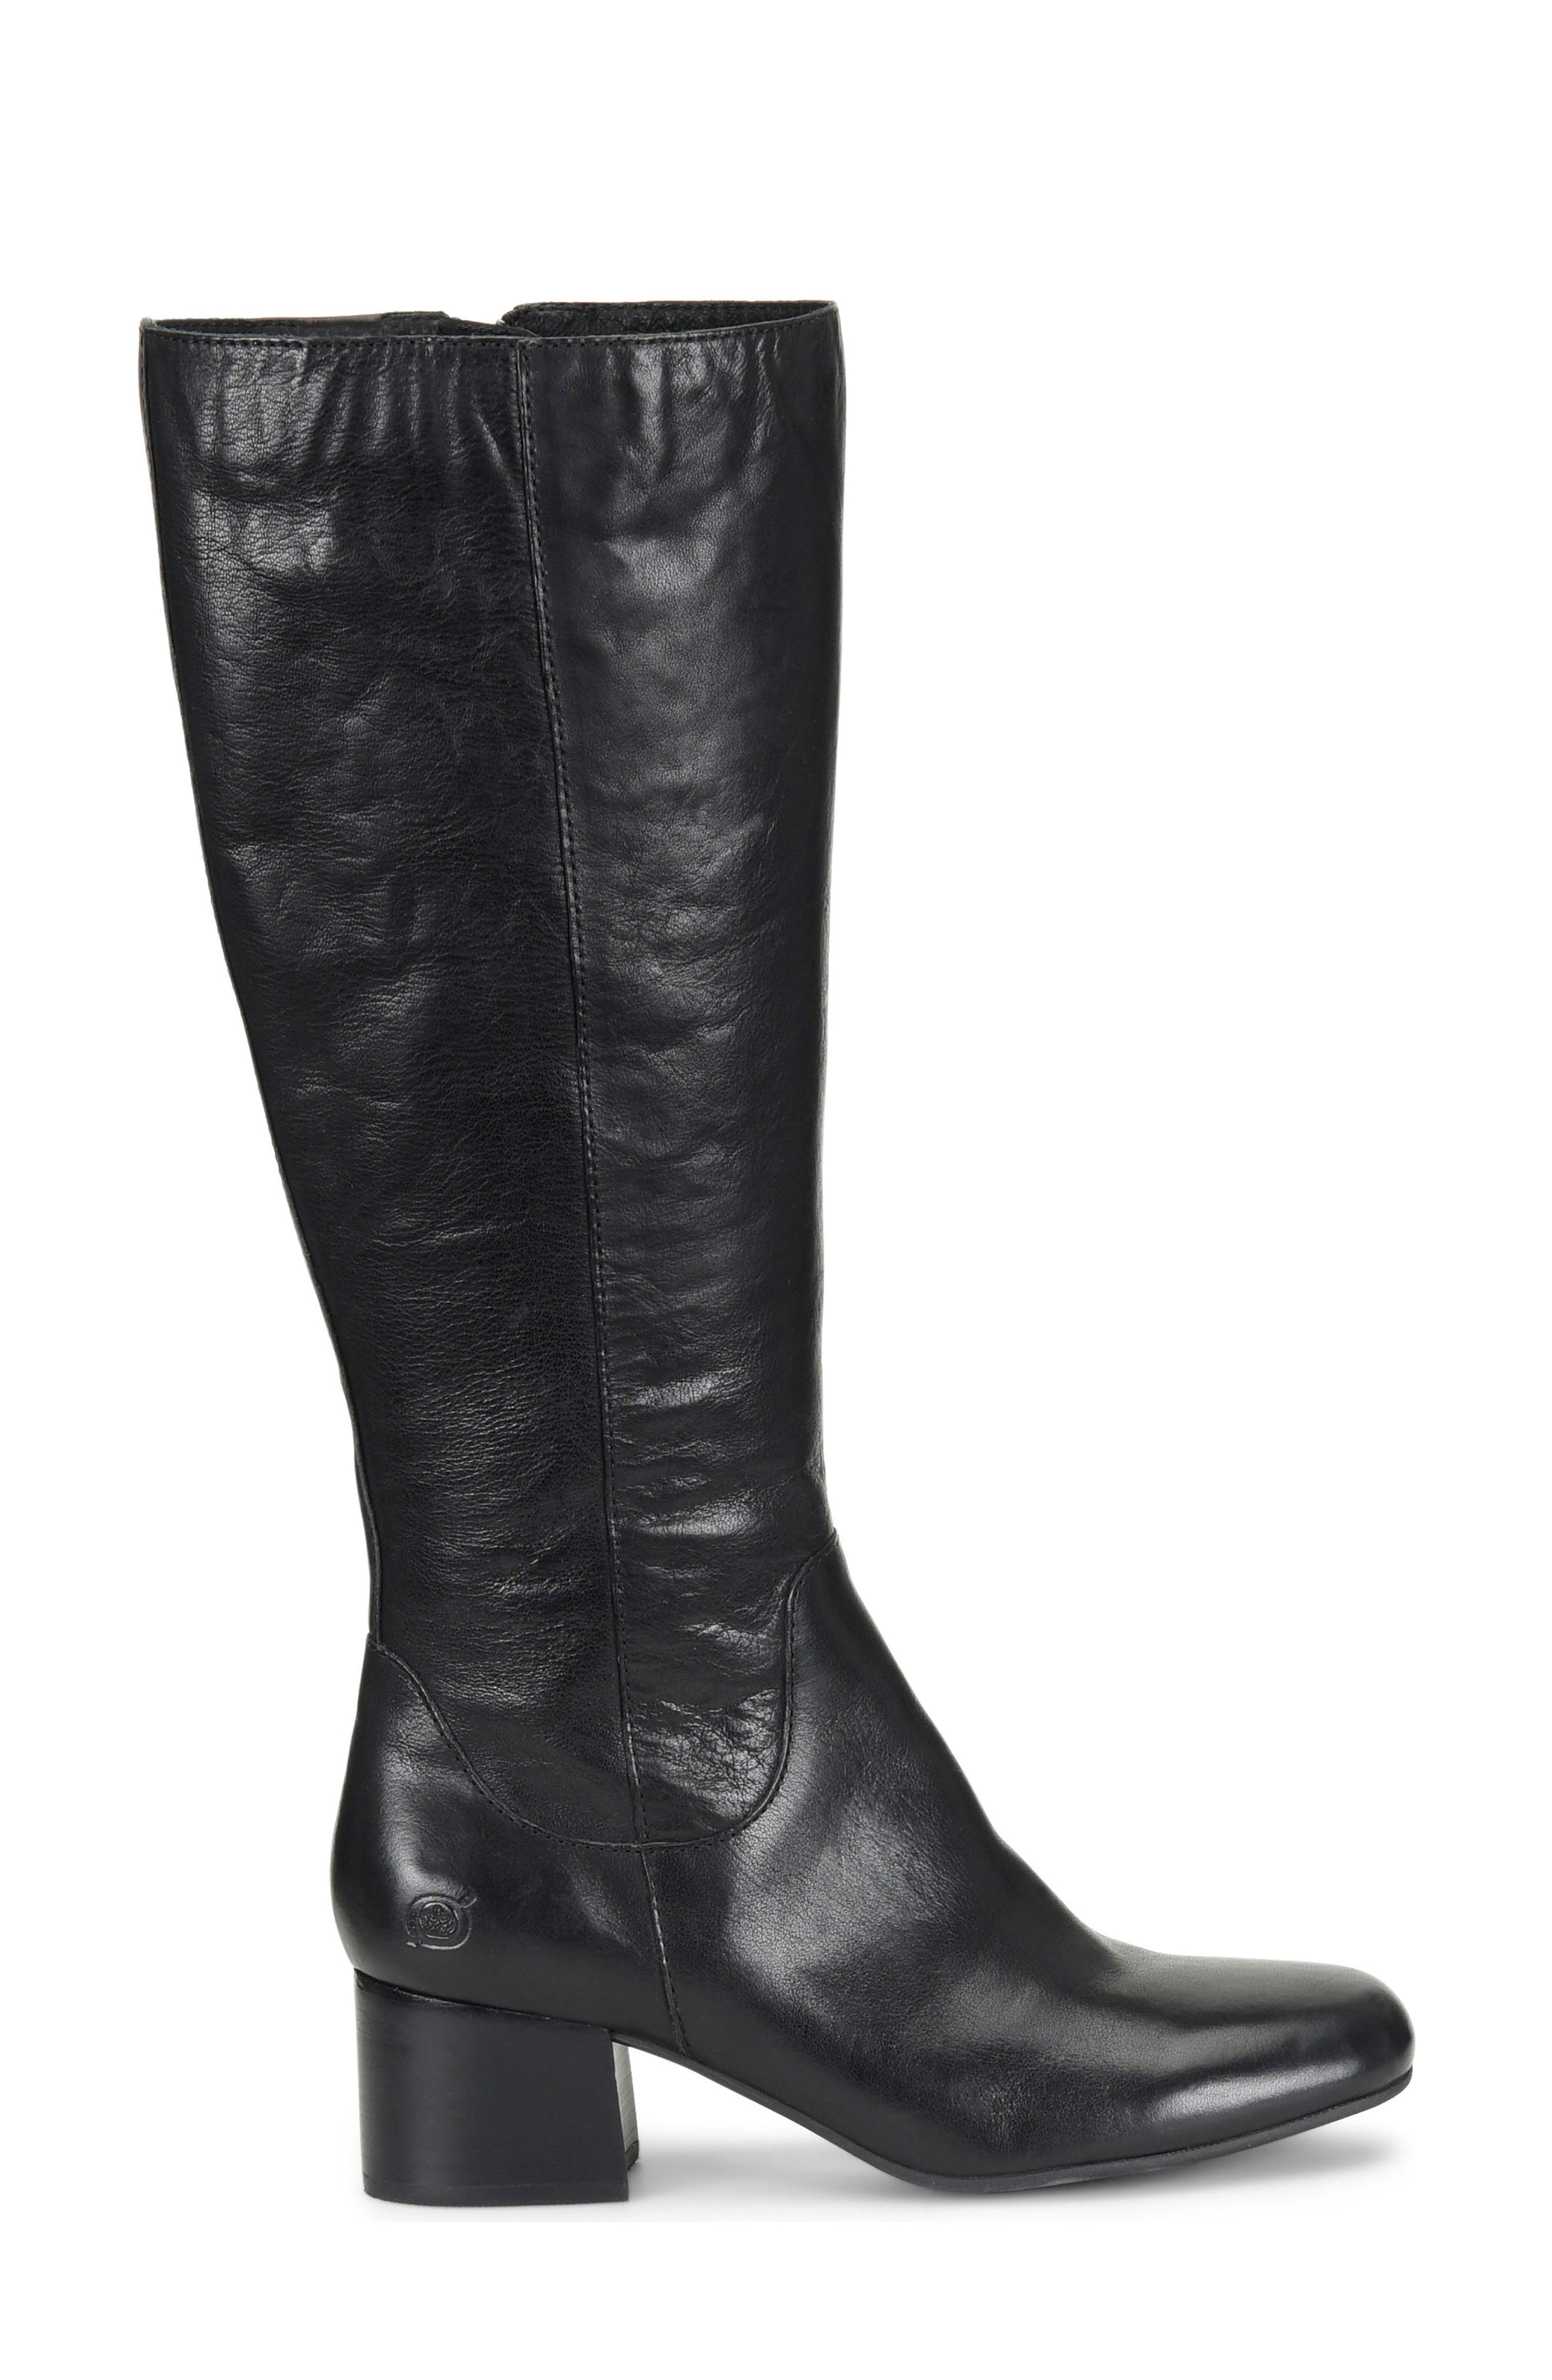 Avala Knee High Boot,                             Alternate thumbnail 3, color,                             Black Leather